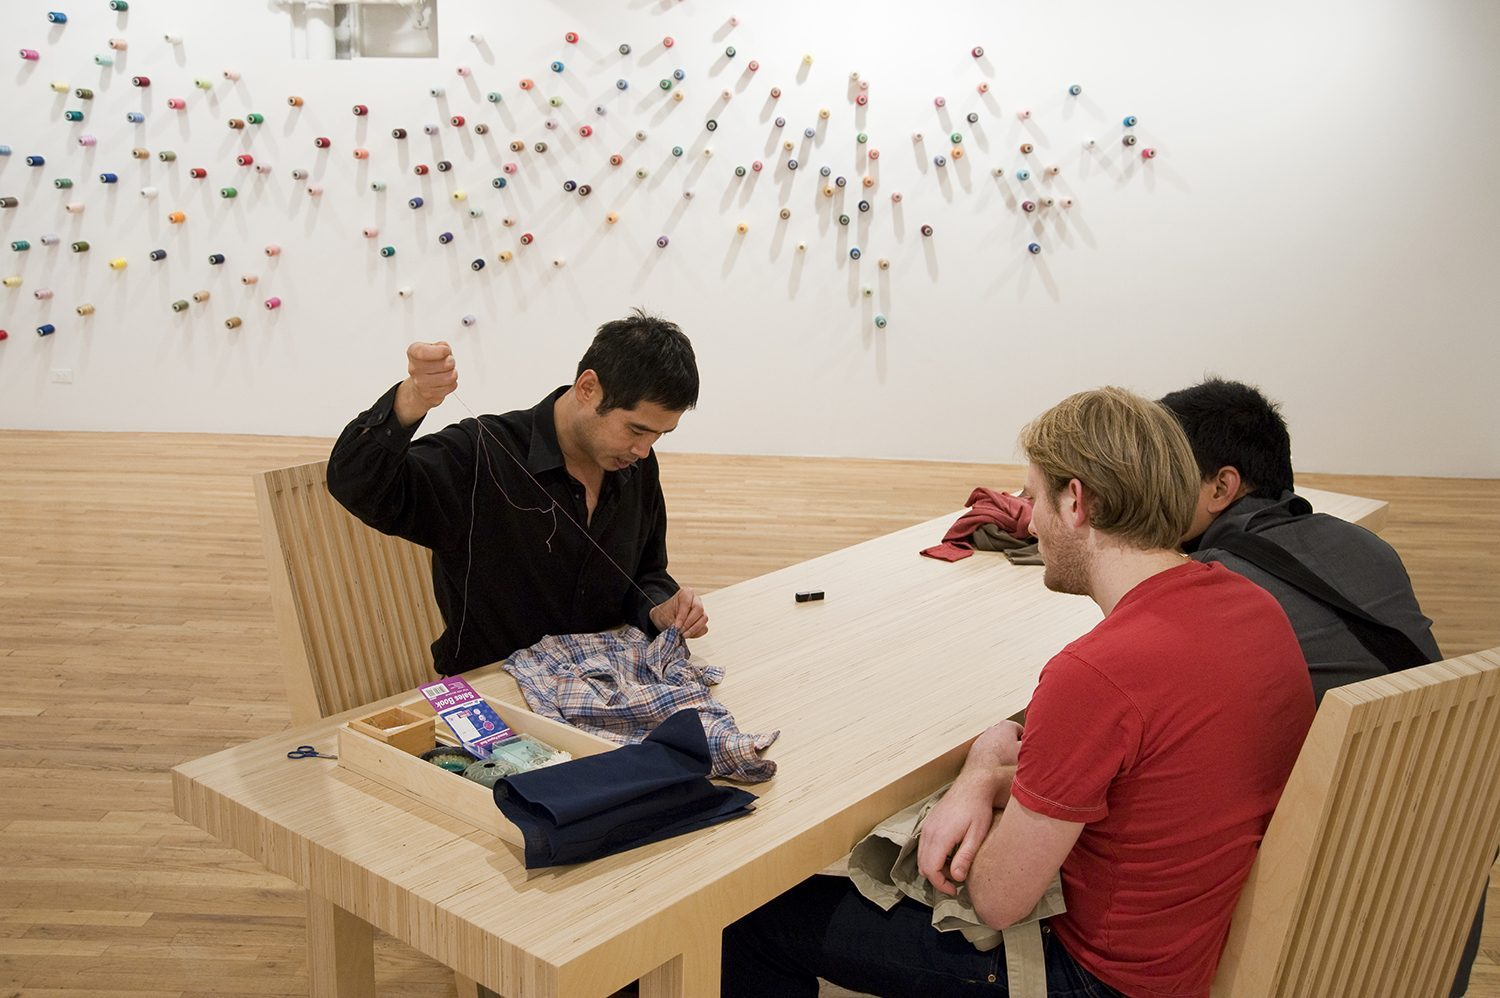 Lee Mingle, The Mending Project. Photo by Anita Kan